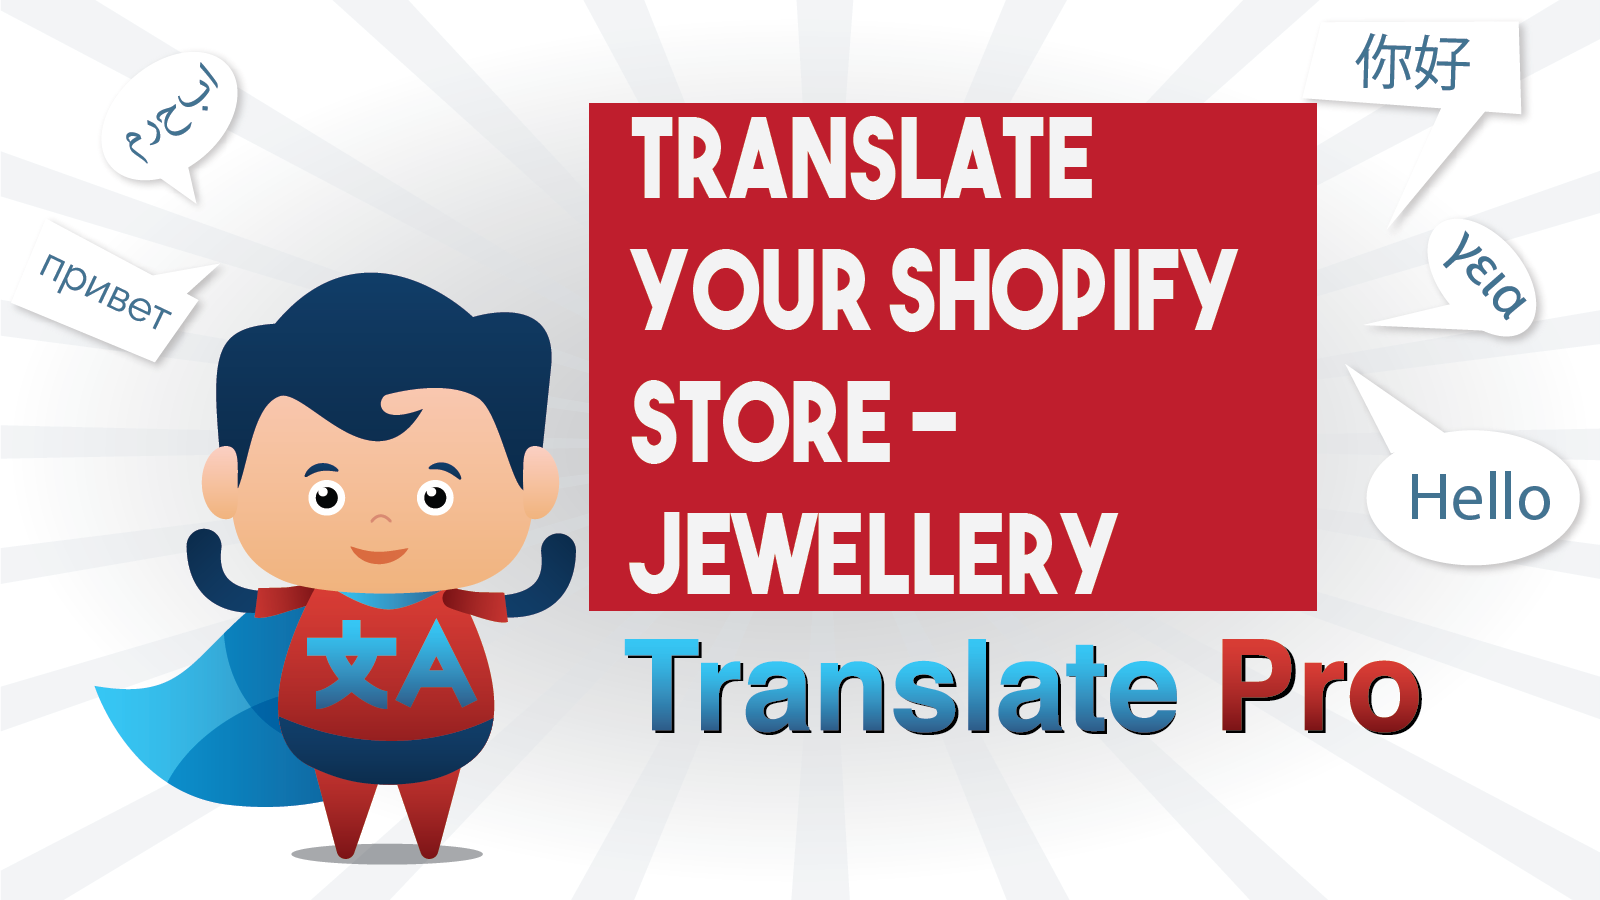 How To Translate Your Shopify Jewellery Store